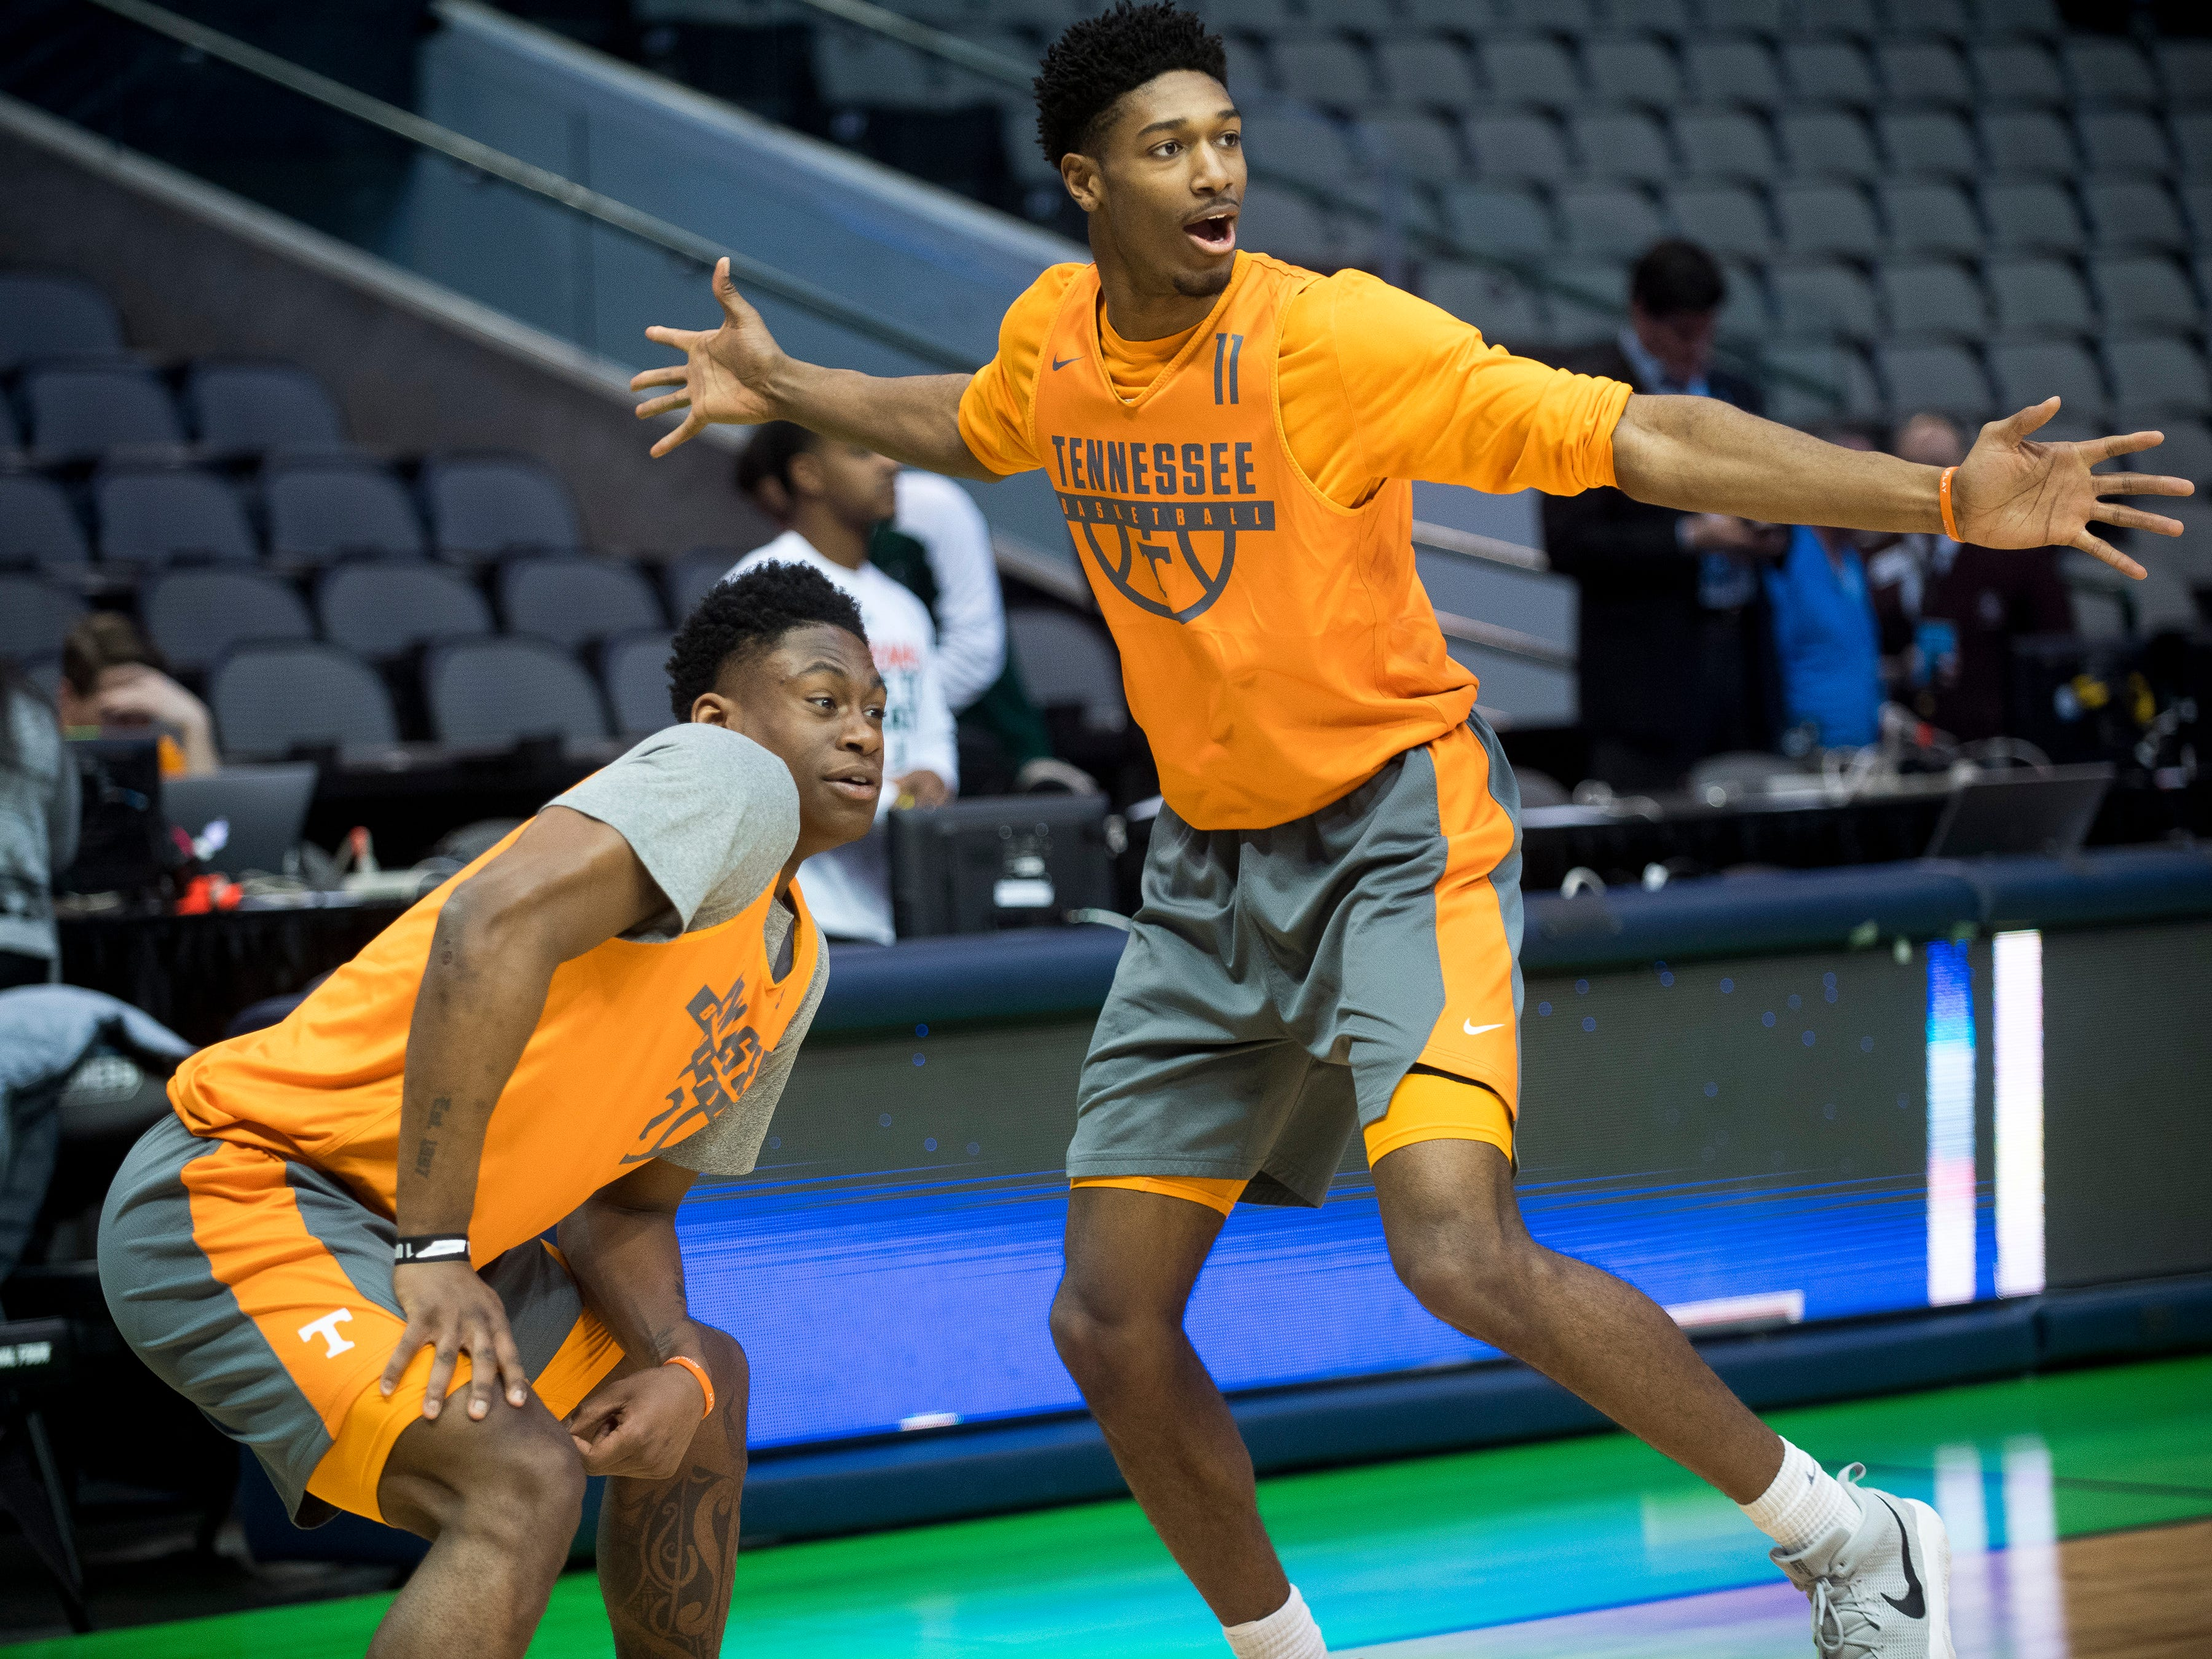 Tennessee forward Admiral Schofield (5) and Tennessee forward Kyle Alexander (11) playfully taunt their teammates during practice at American Airlines Arena on Wednesday, March 14, 2018, ahead of the NCAA Tournament first round game between Tennessee and Wright State.